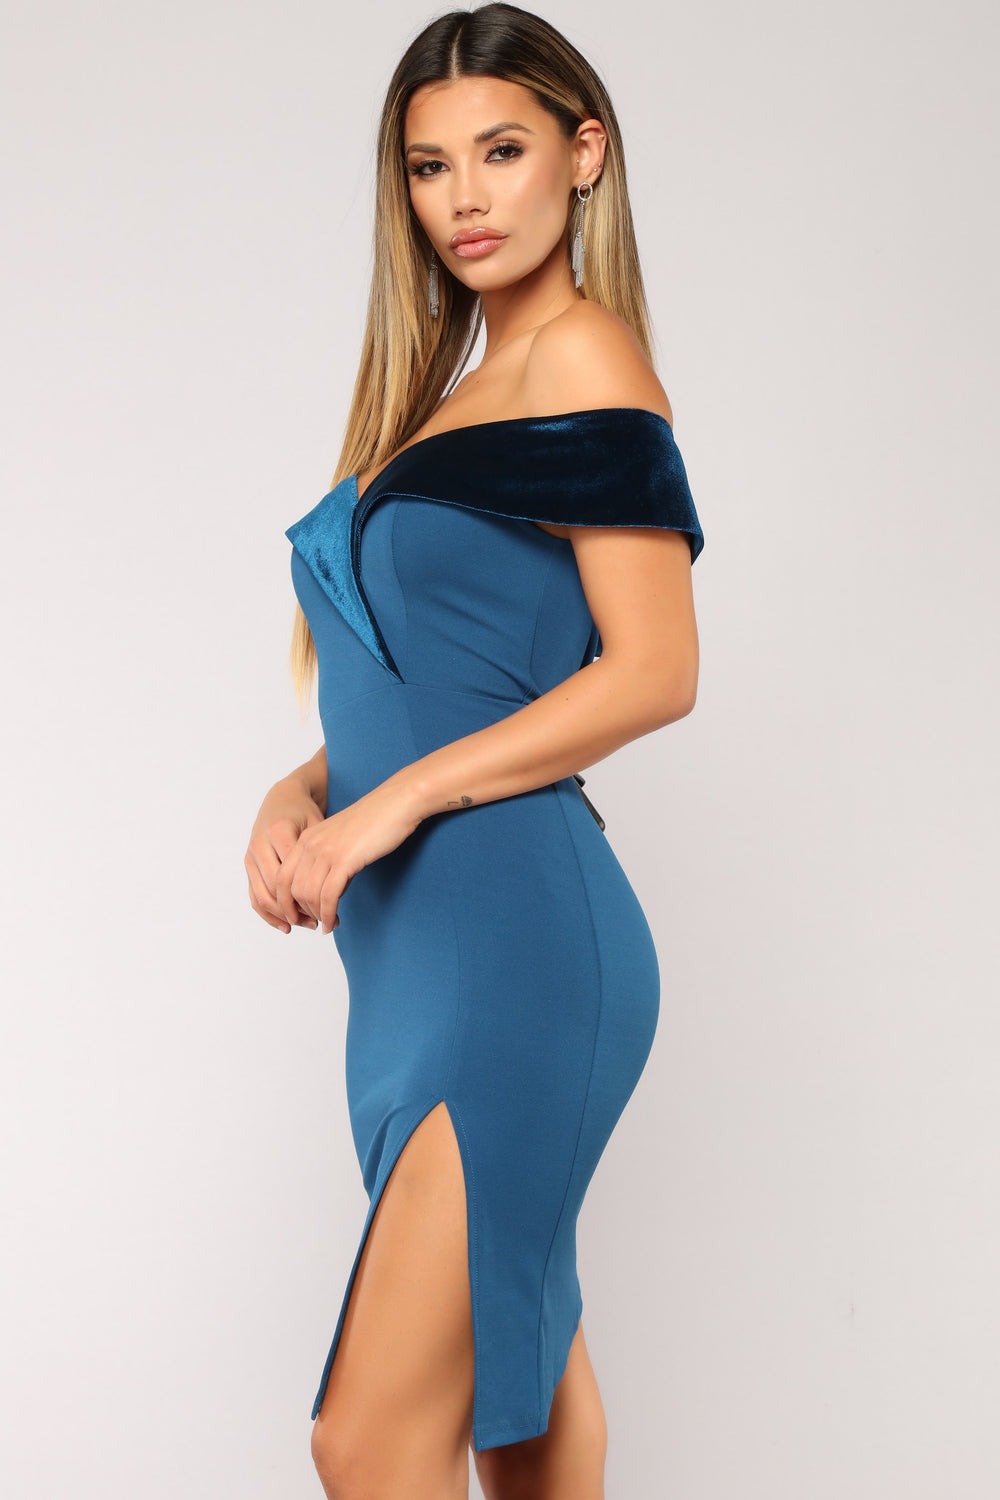 Azure Dreams Dress - Teal